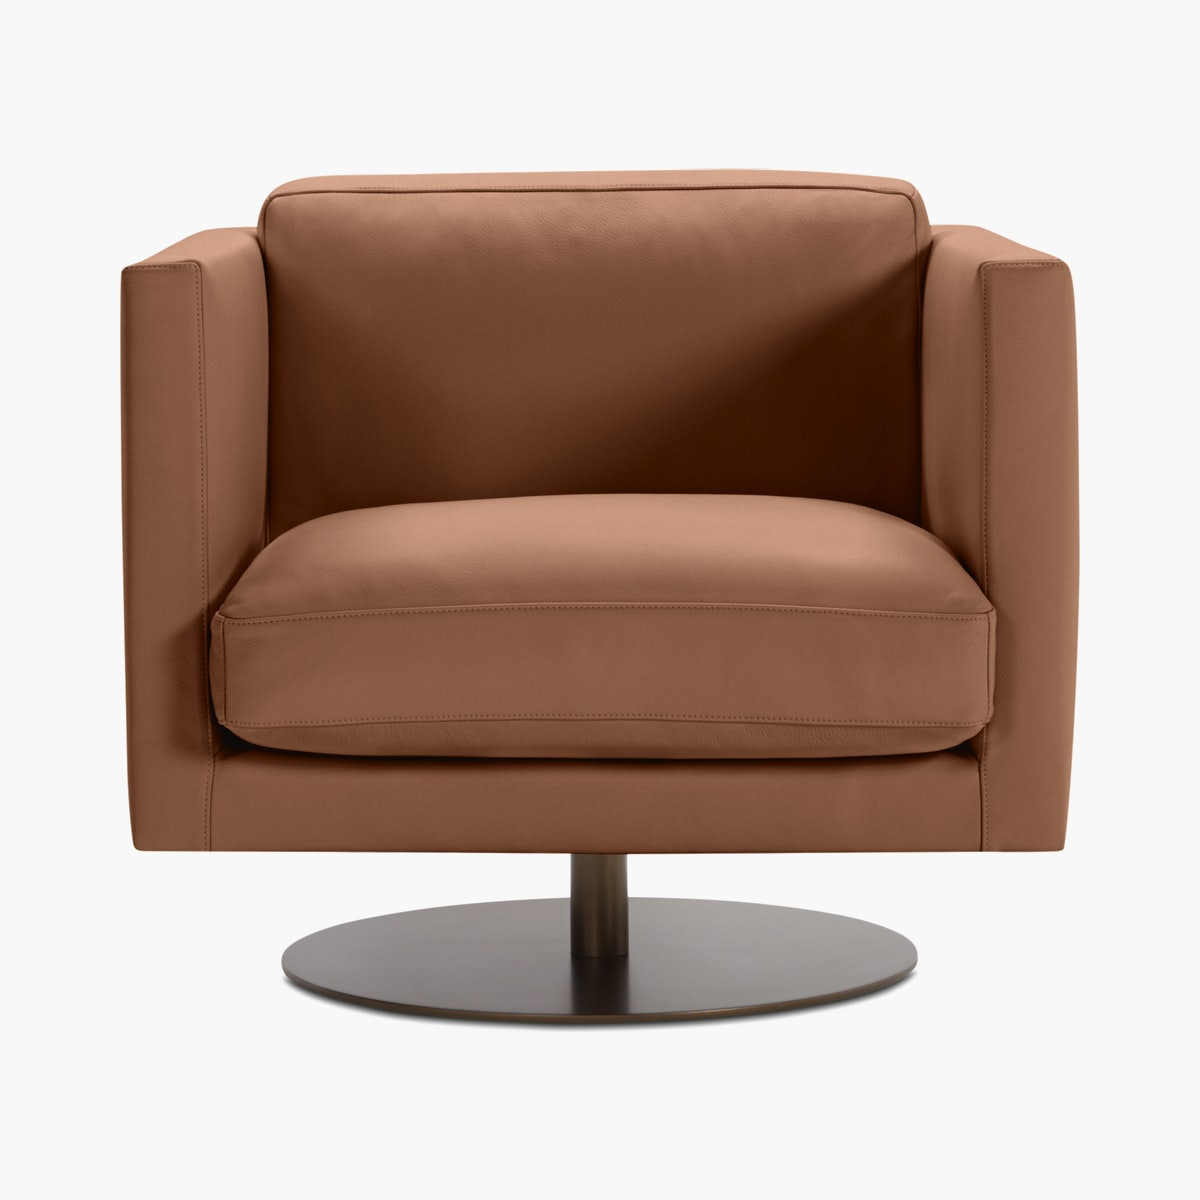 Comolino Swivel Chair